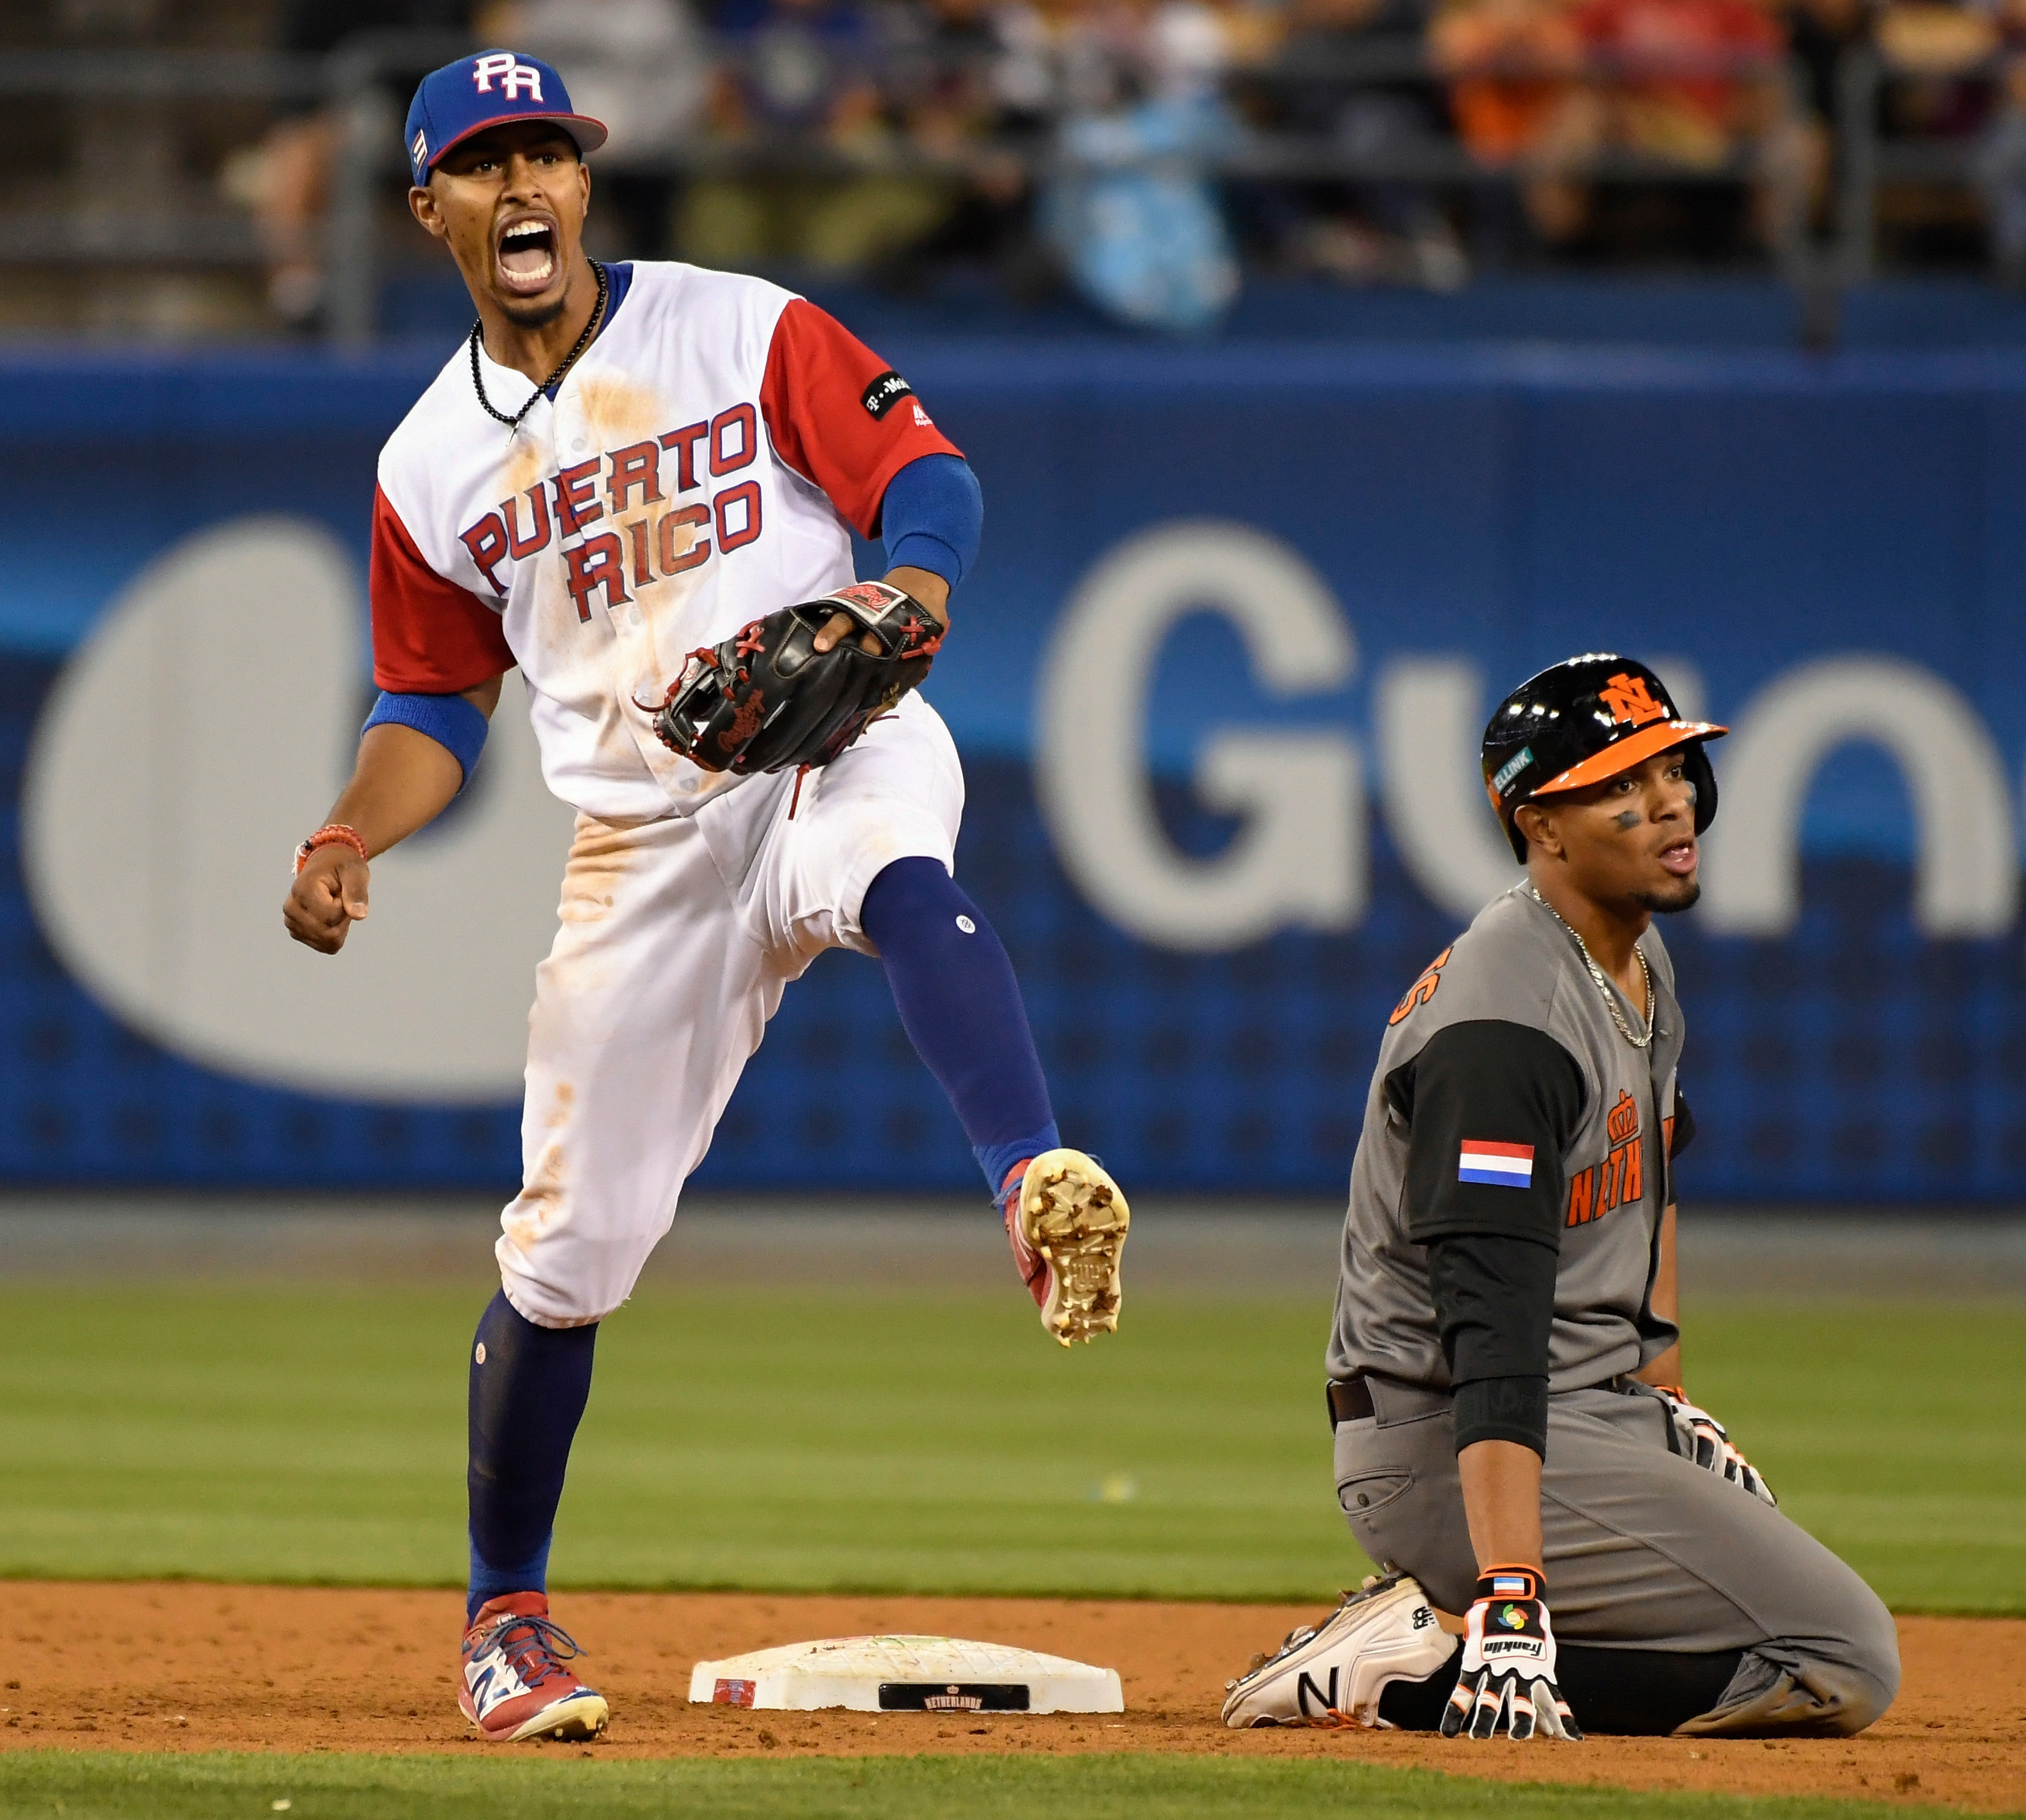 8cff9629c4f ... Francisco Lindor (12) celebrates after forcing out Netherlands  infielder Xander Bogaerts (1) to start a double play during the 2017 World  Baseball ...